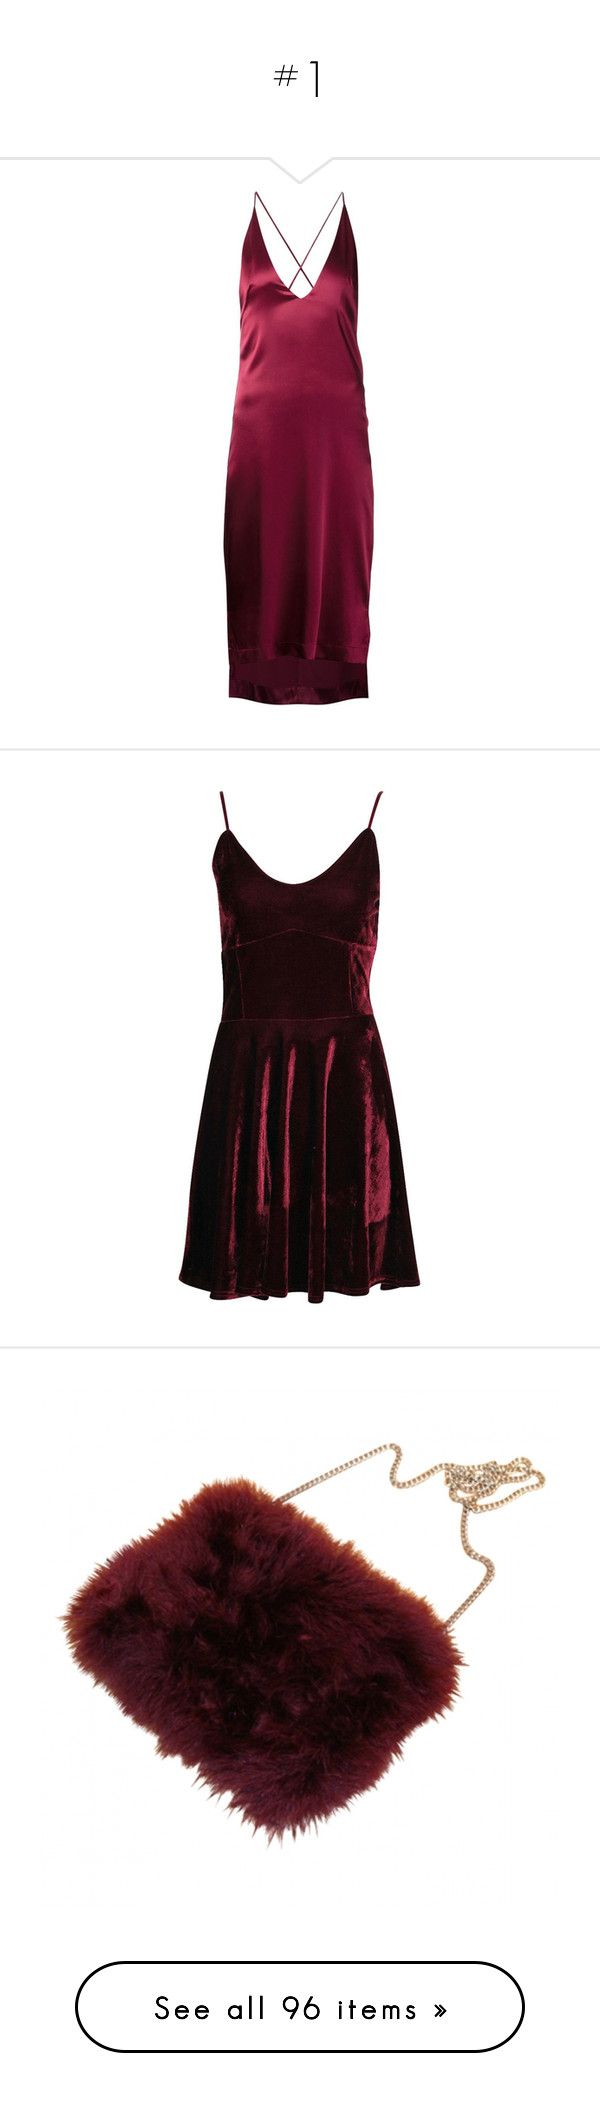 """""""#1"""" by music23260721-1 ❤ liked on Polyvore featuring dresses, red, purple cami, purple dress, red asymmetrical dress, red camisole, silk dress, velvet dress, fit and flare dress and strap dress"""